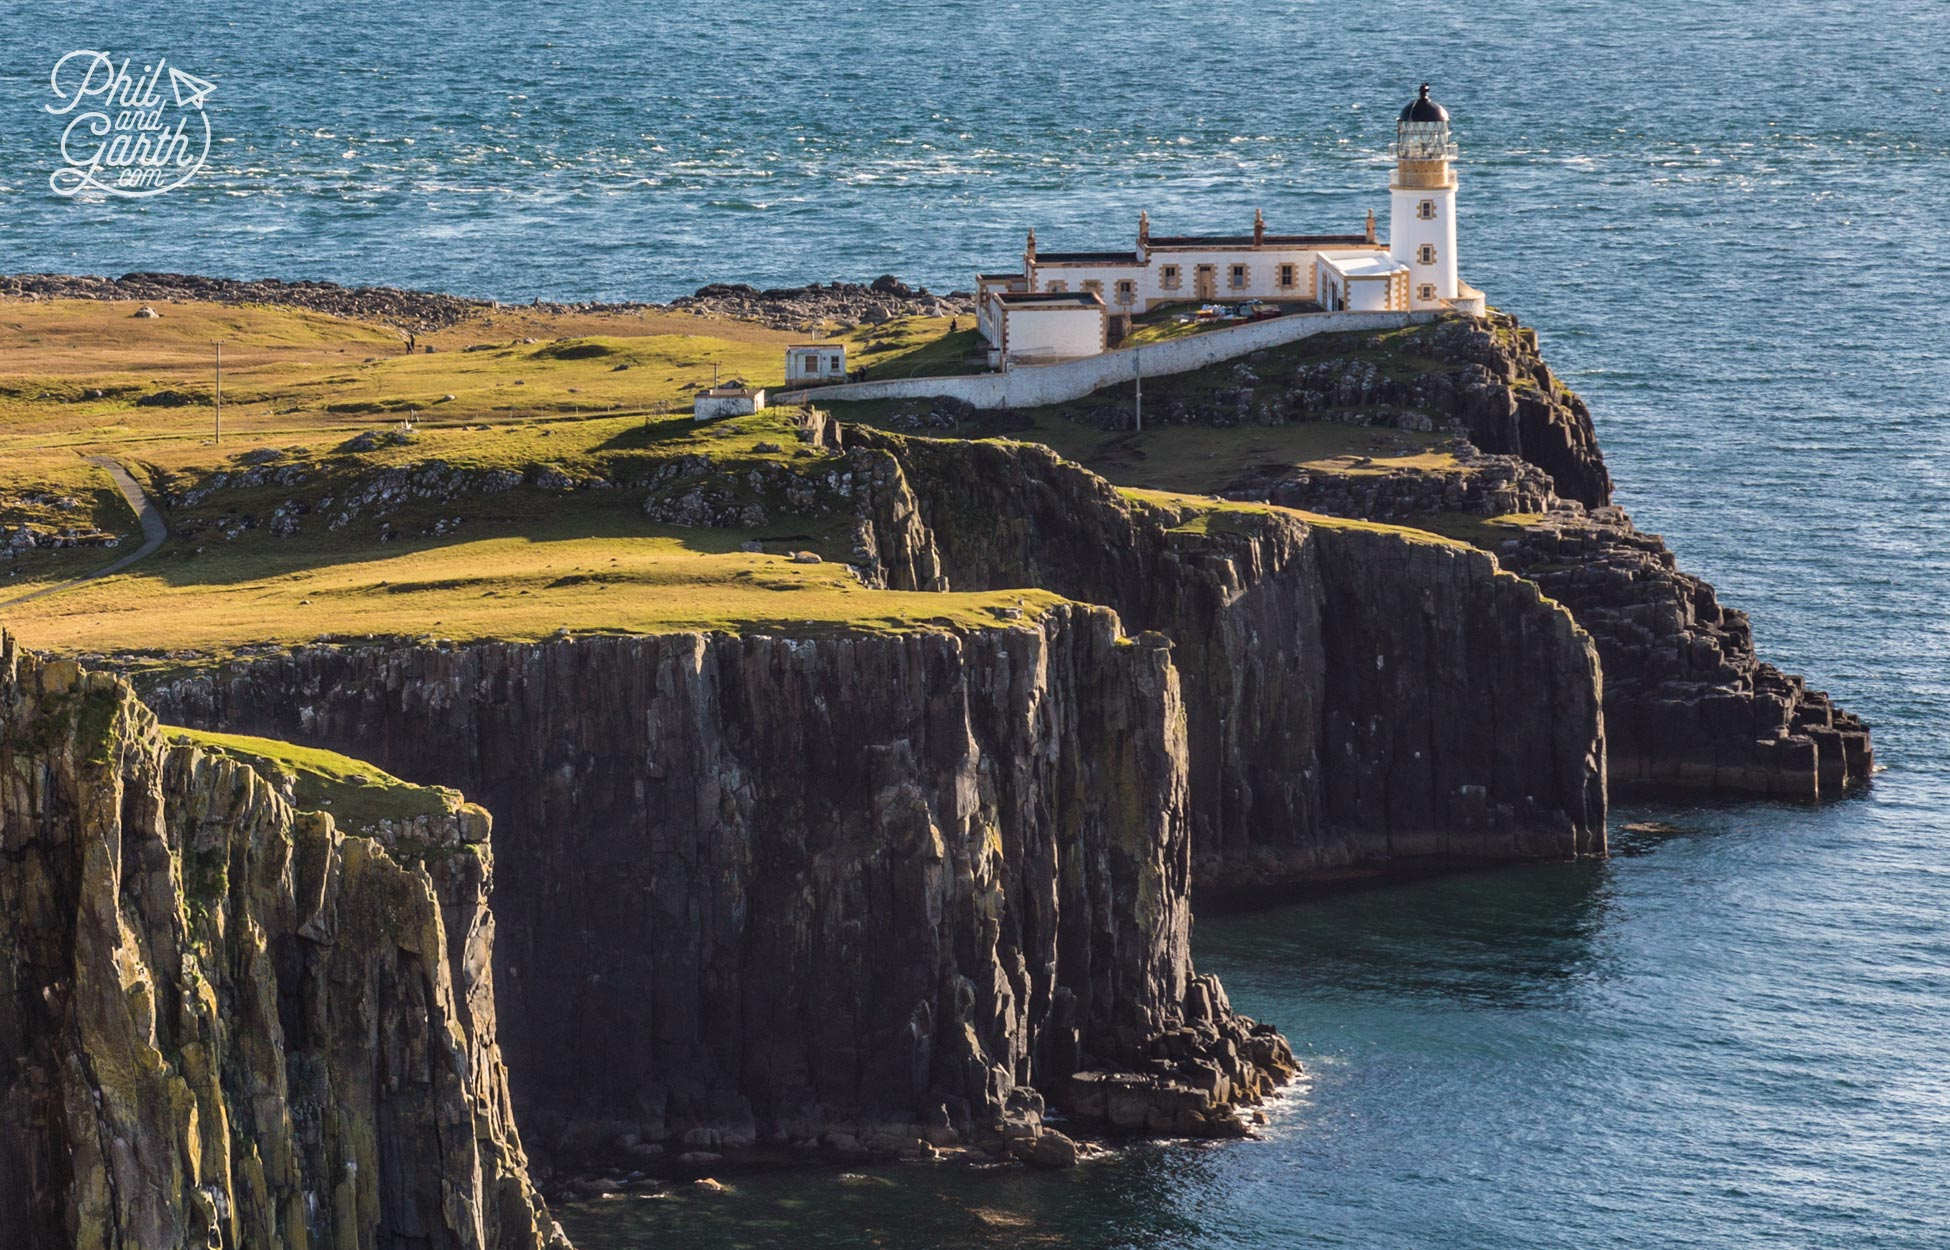 Scotland's famous Neist Point Lighthouse built in 1900